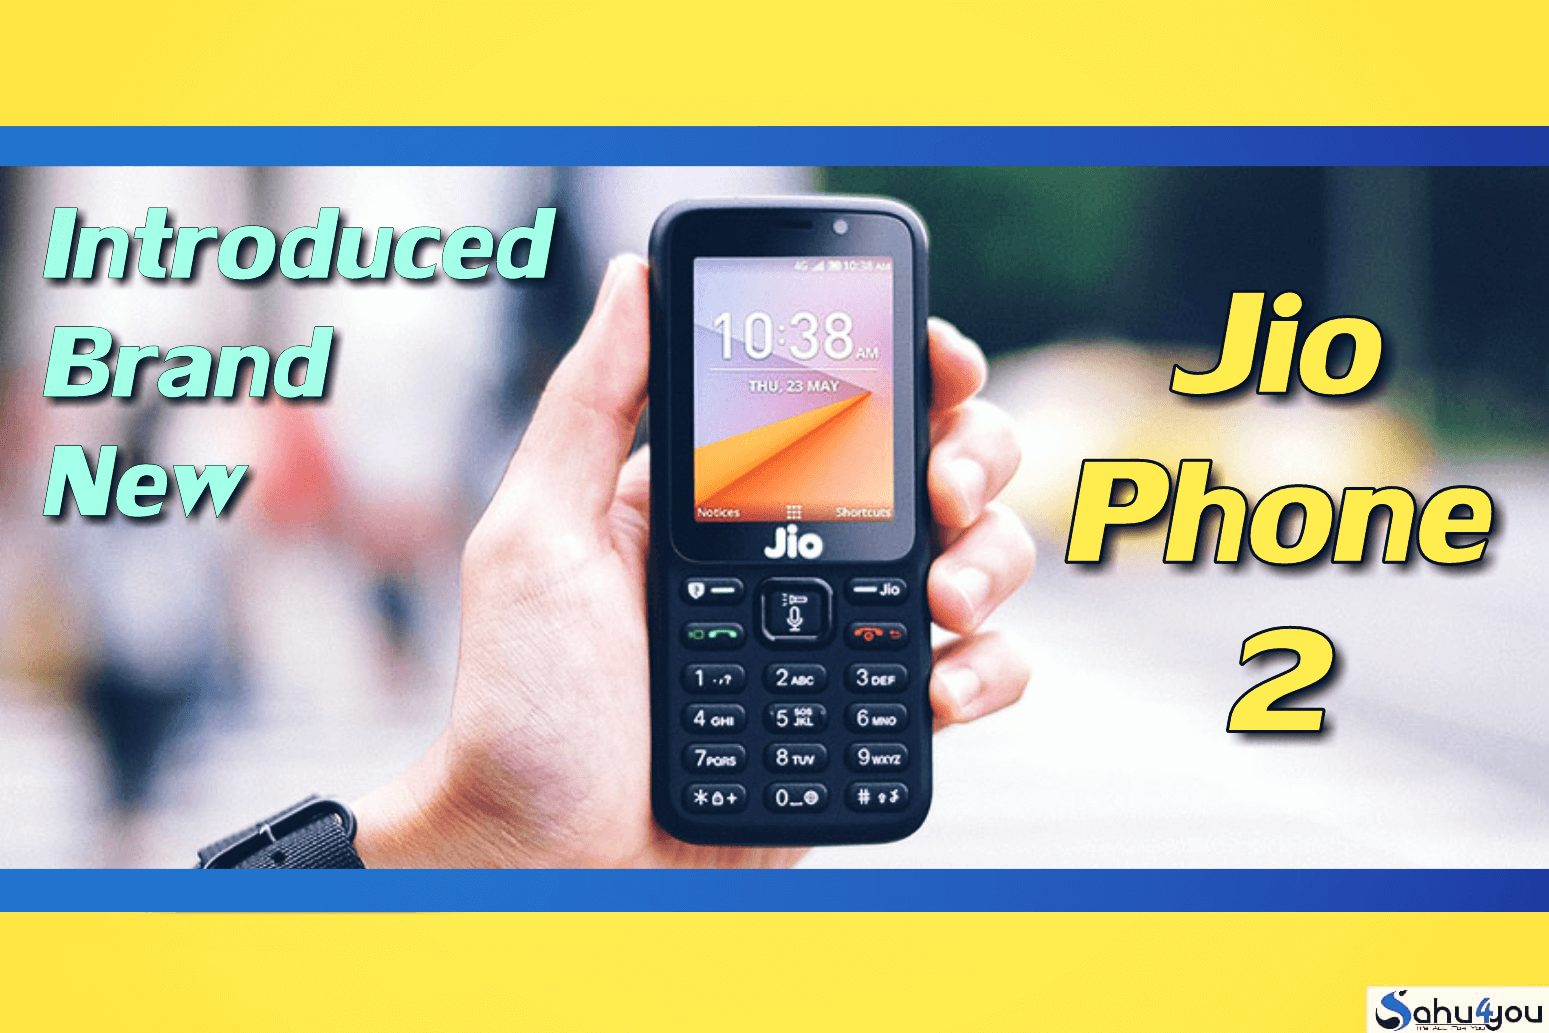 Jio Phone 2 Price, Specifications, Features